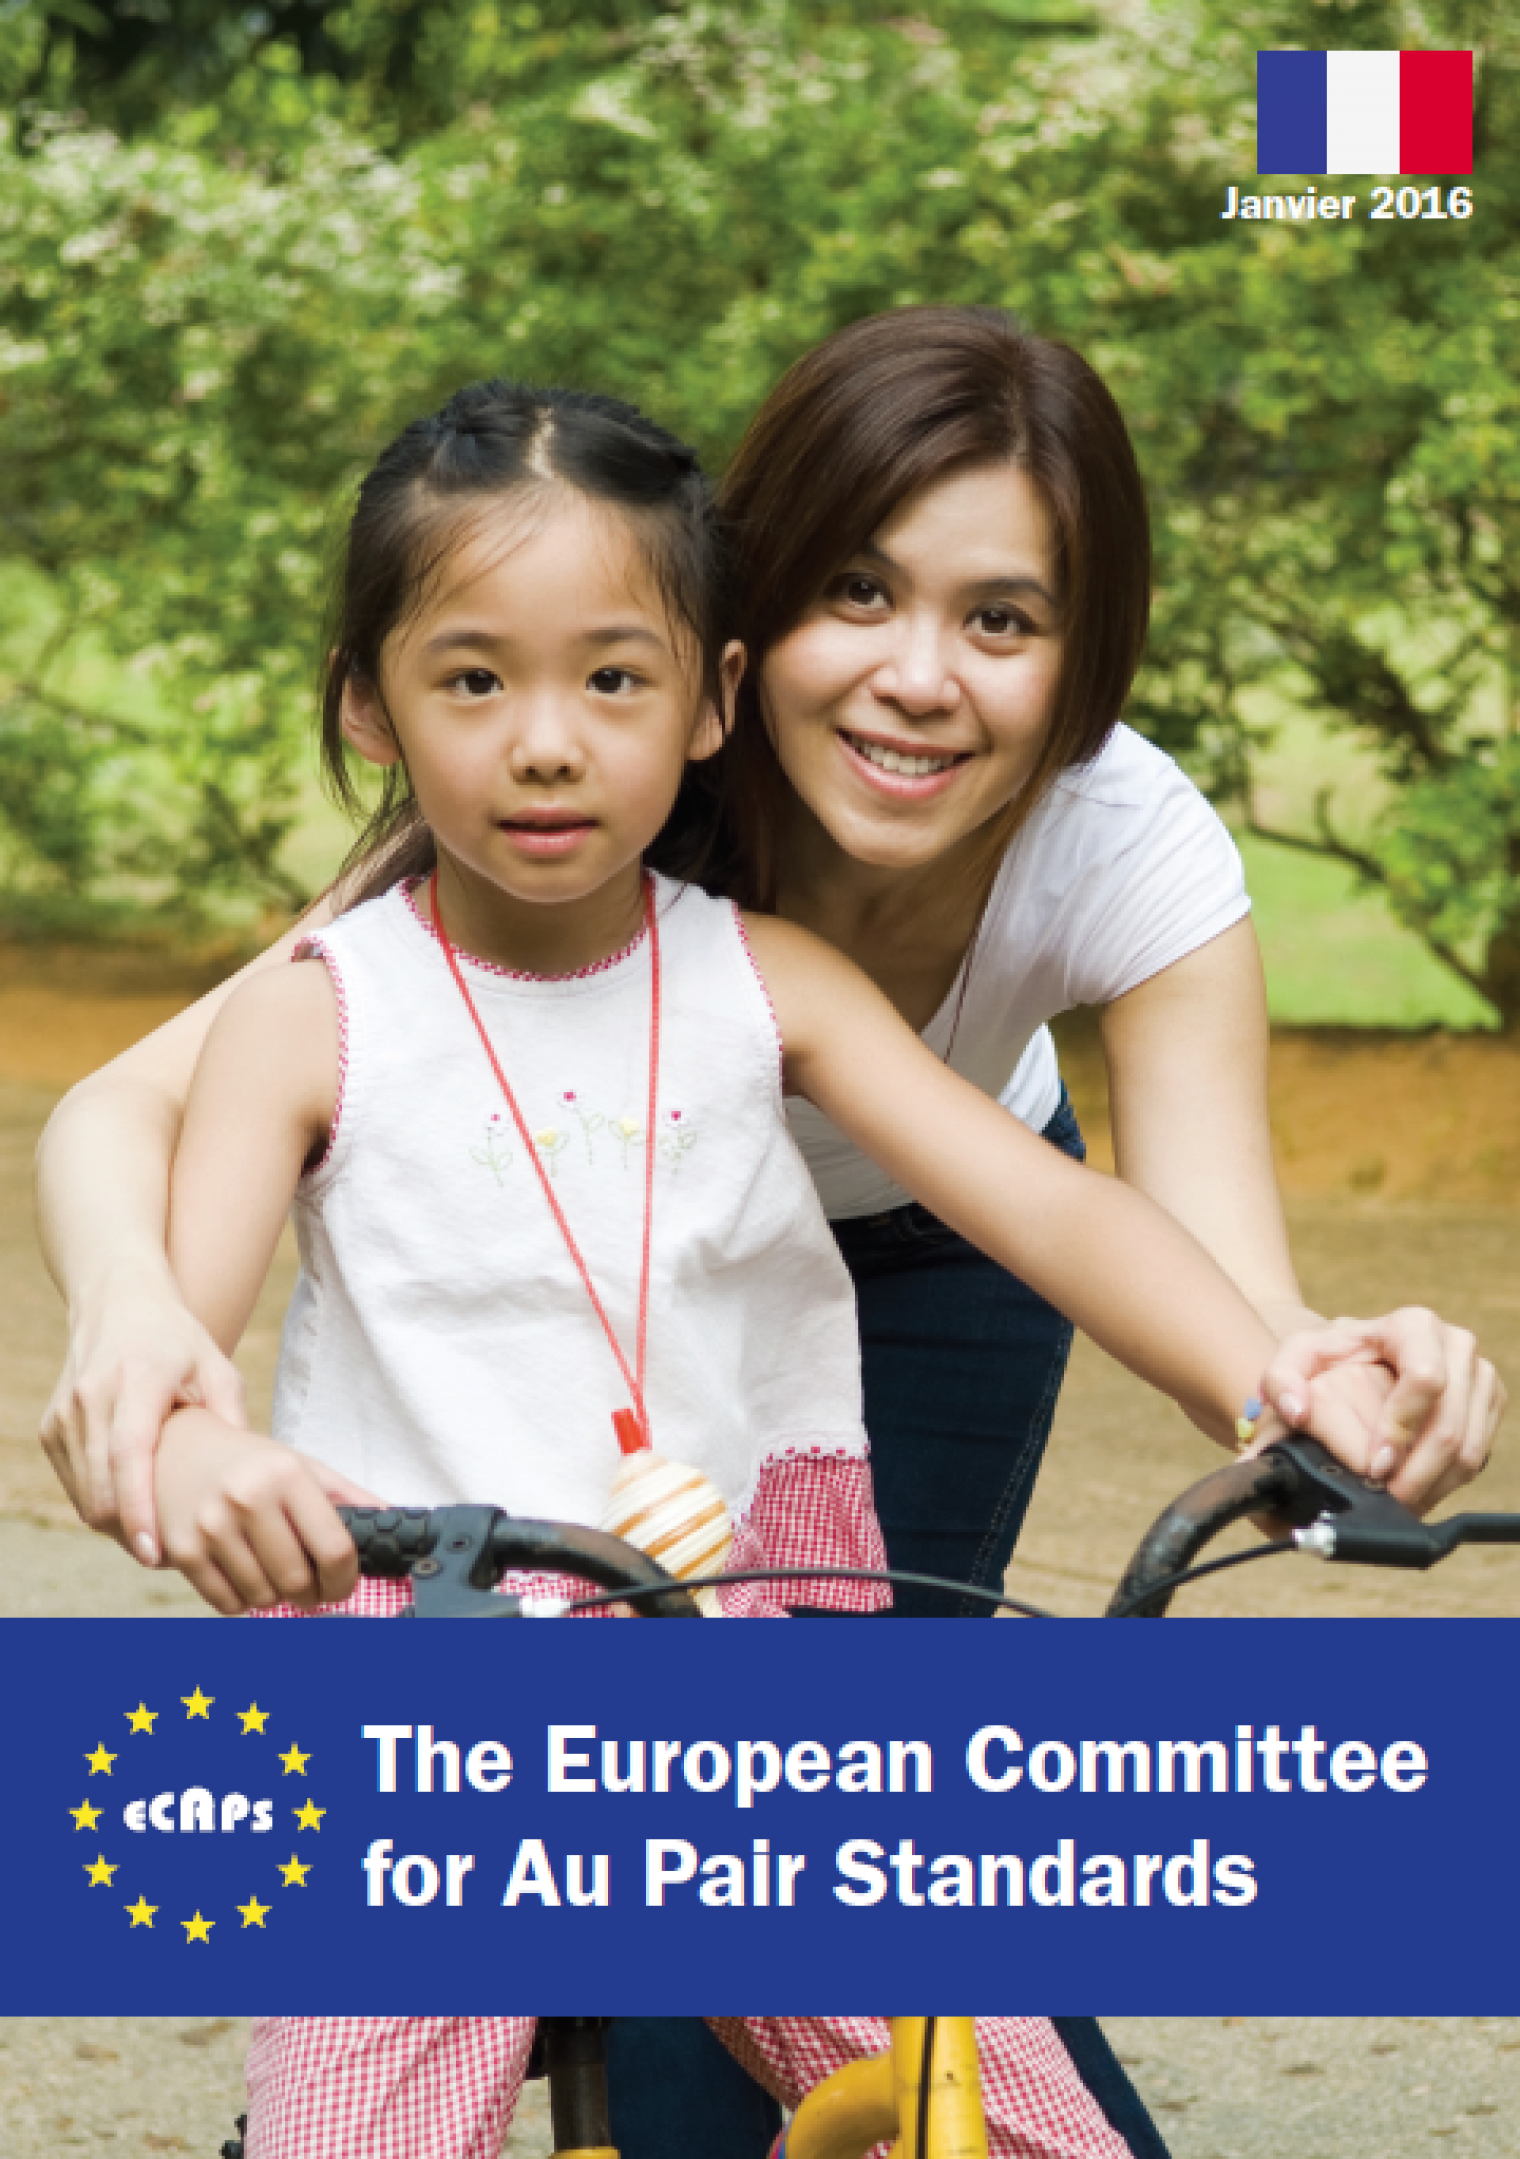 ECAPS standards booklet now also available in French